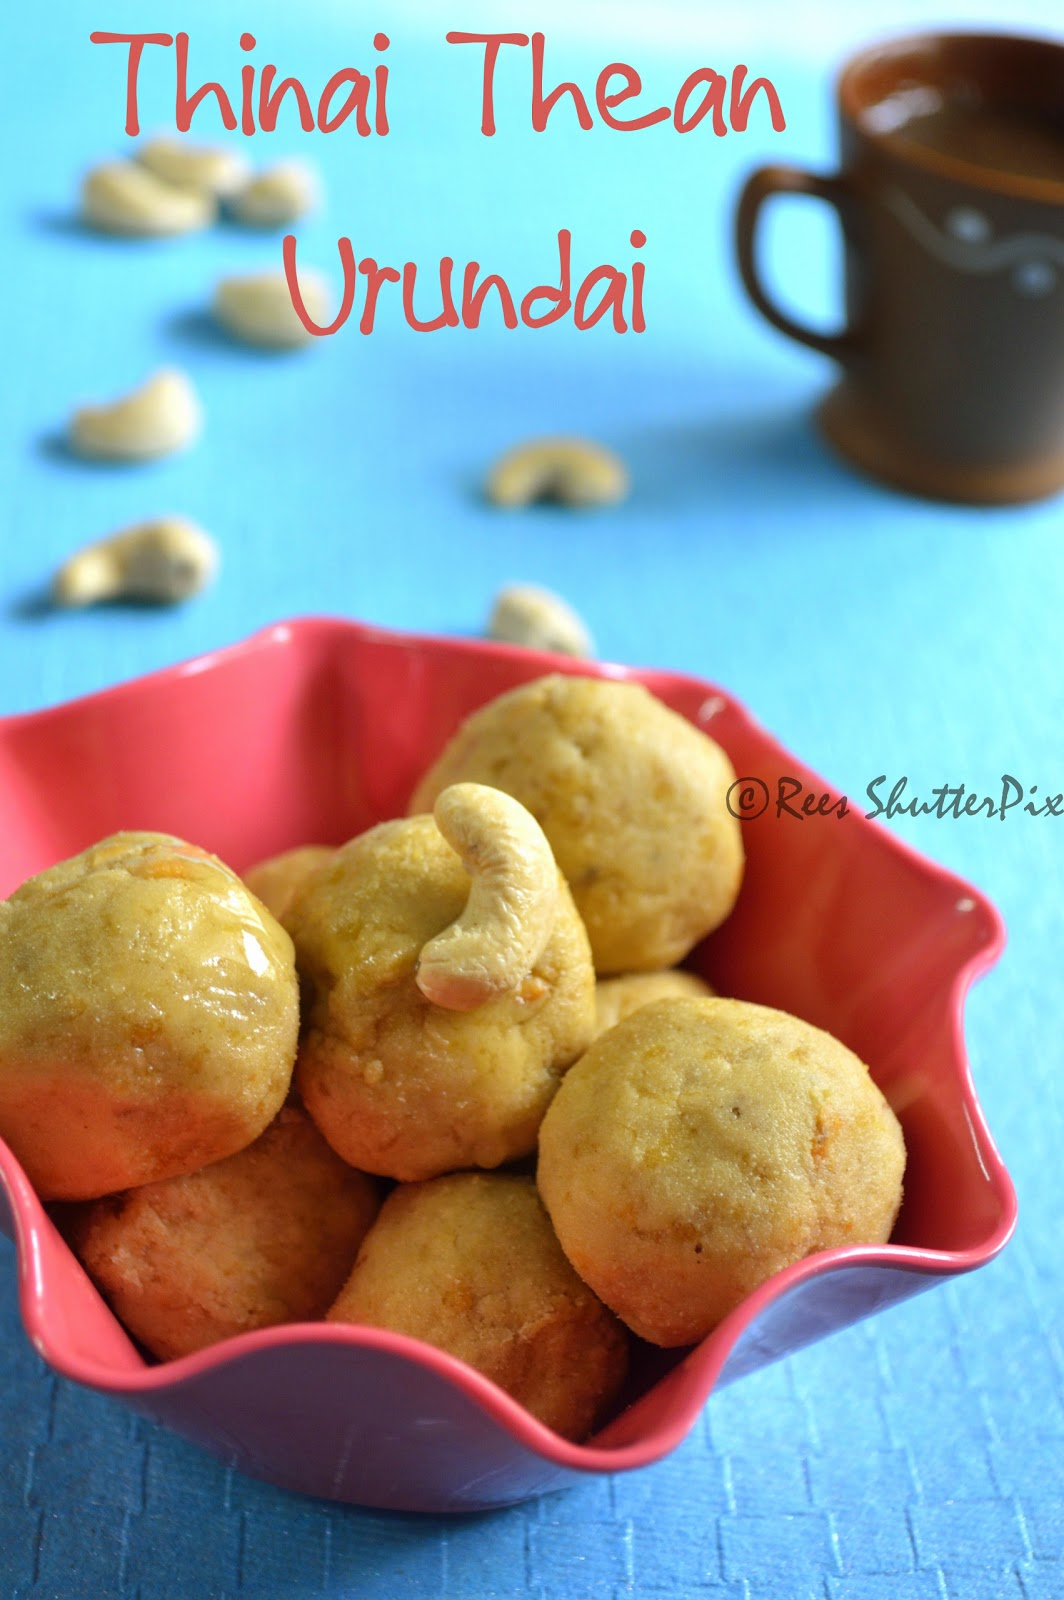 easy millet recipe, Millet Recipes, Foxtail Millet Recipes, Sweets Recipes, easy sweet recipe, thinai thean urundai, foxtail millet laddoos, ladoo recipe, thinai ladoo, sweet millet recipes, Gluten-Free Recipes, Gluten-Free Foods,